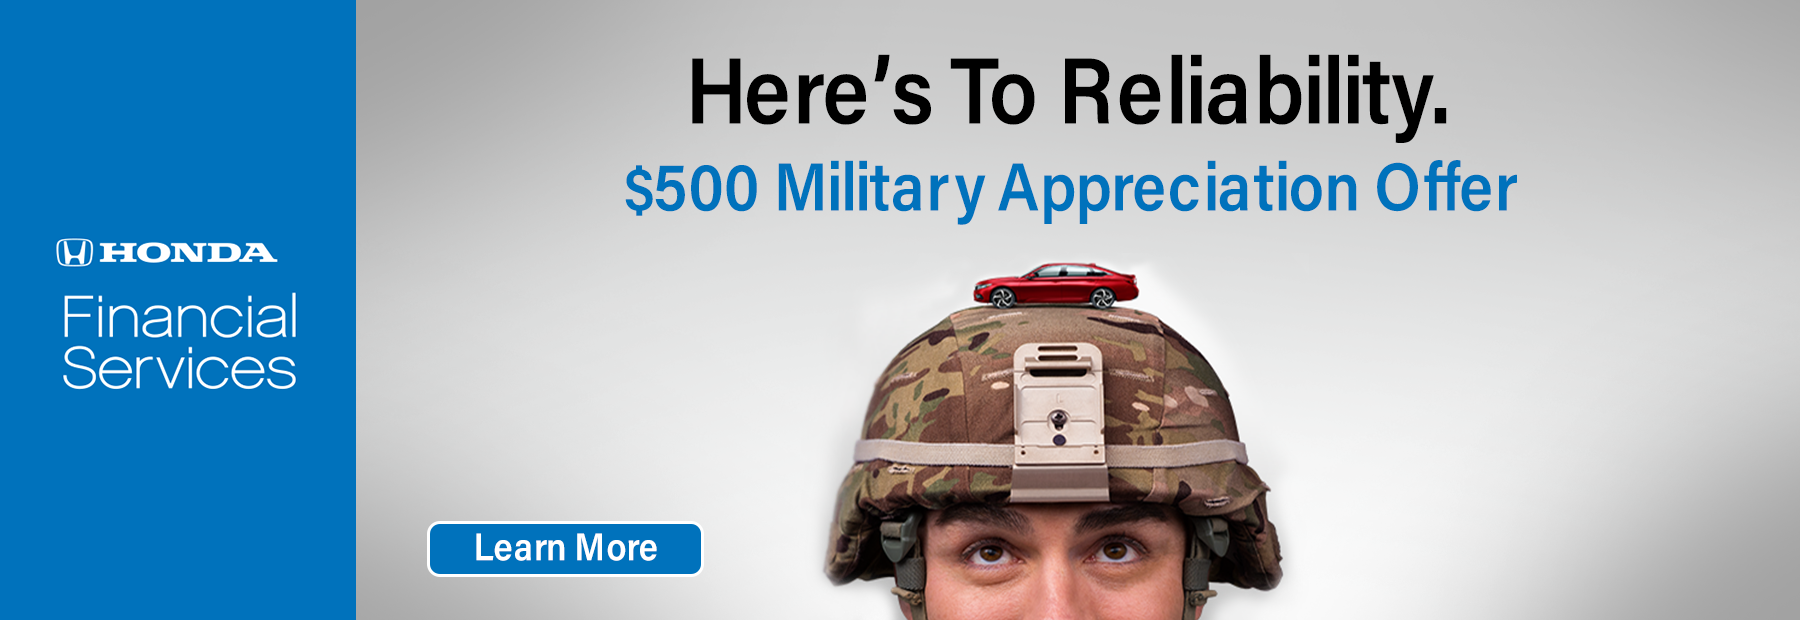 honda-military-program-cash-incentive-cincinnati-ohio